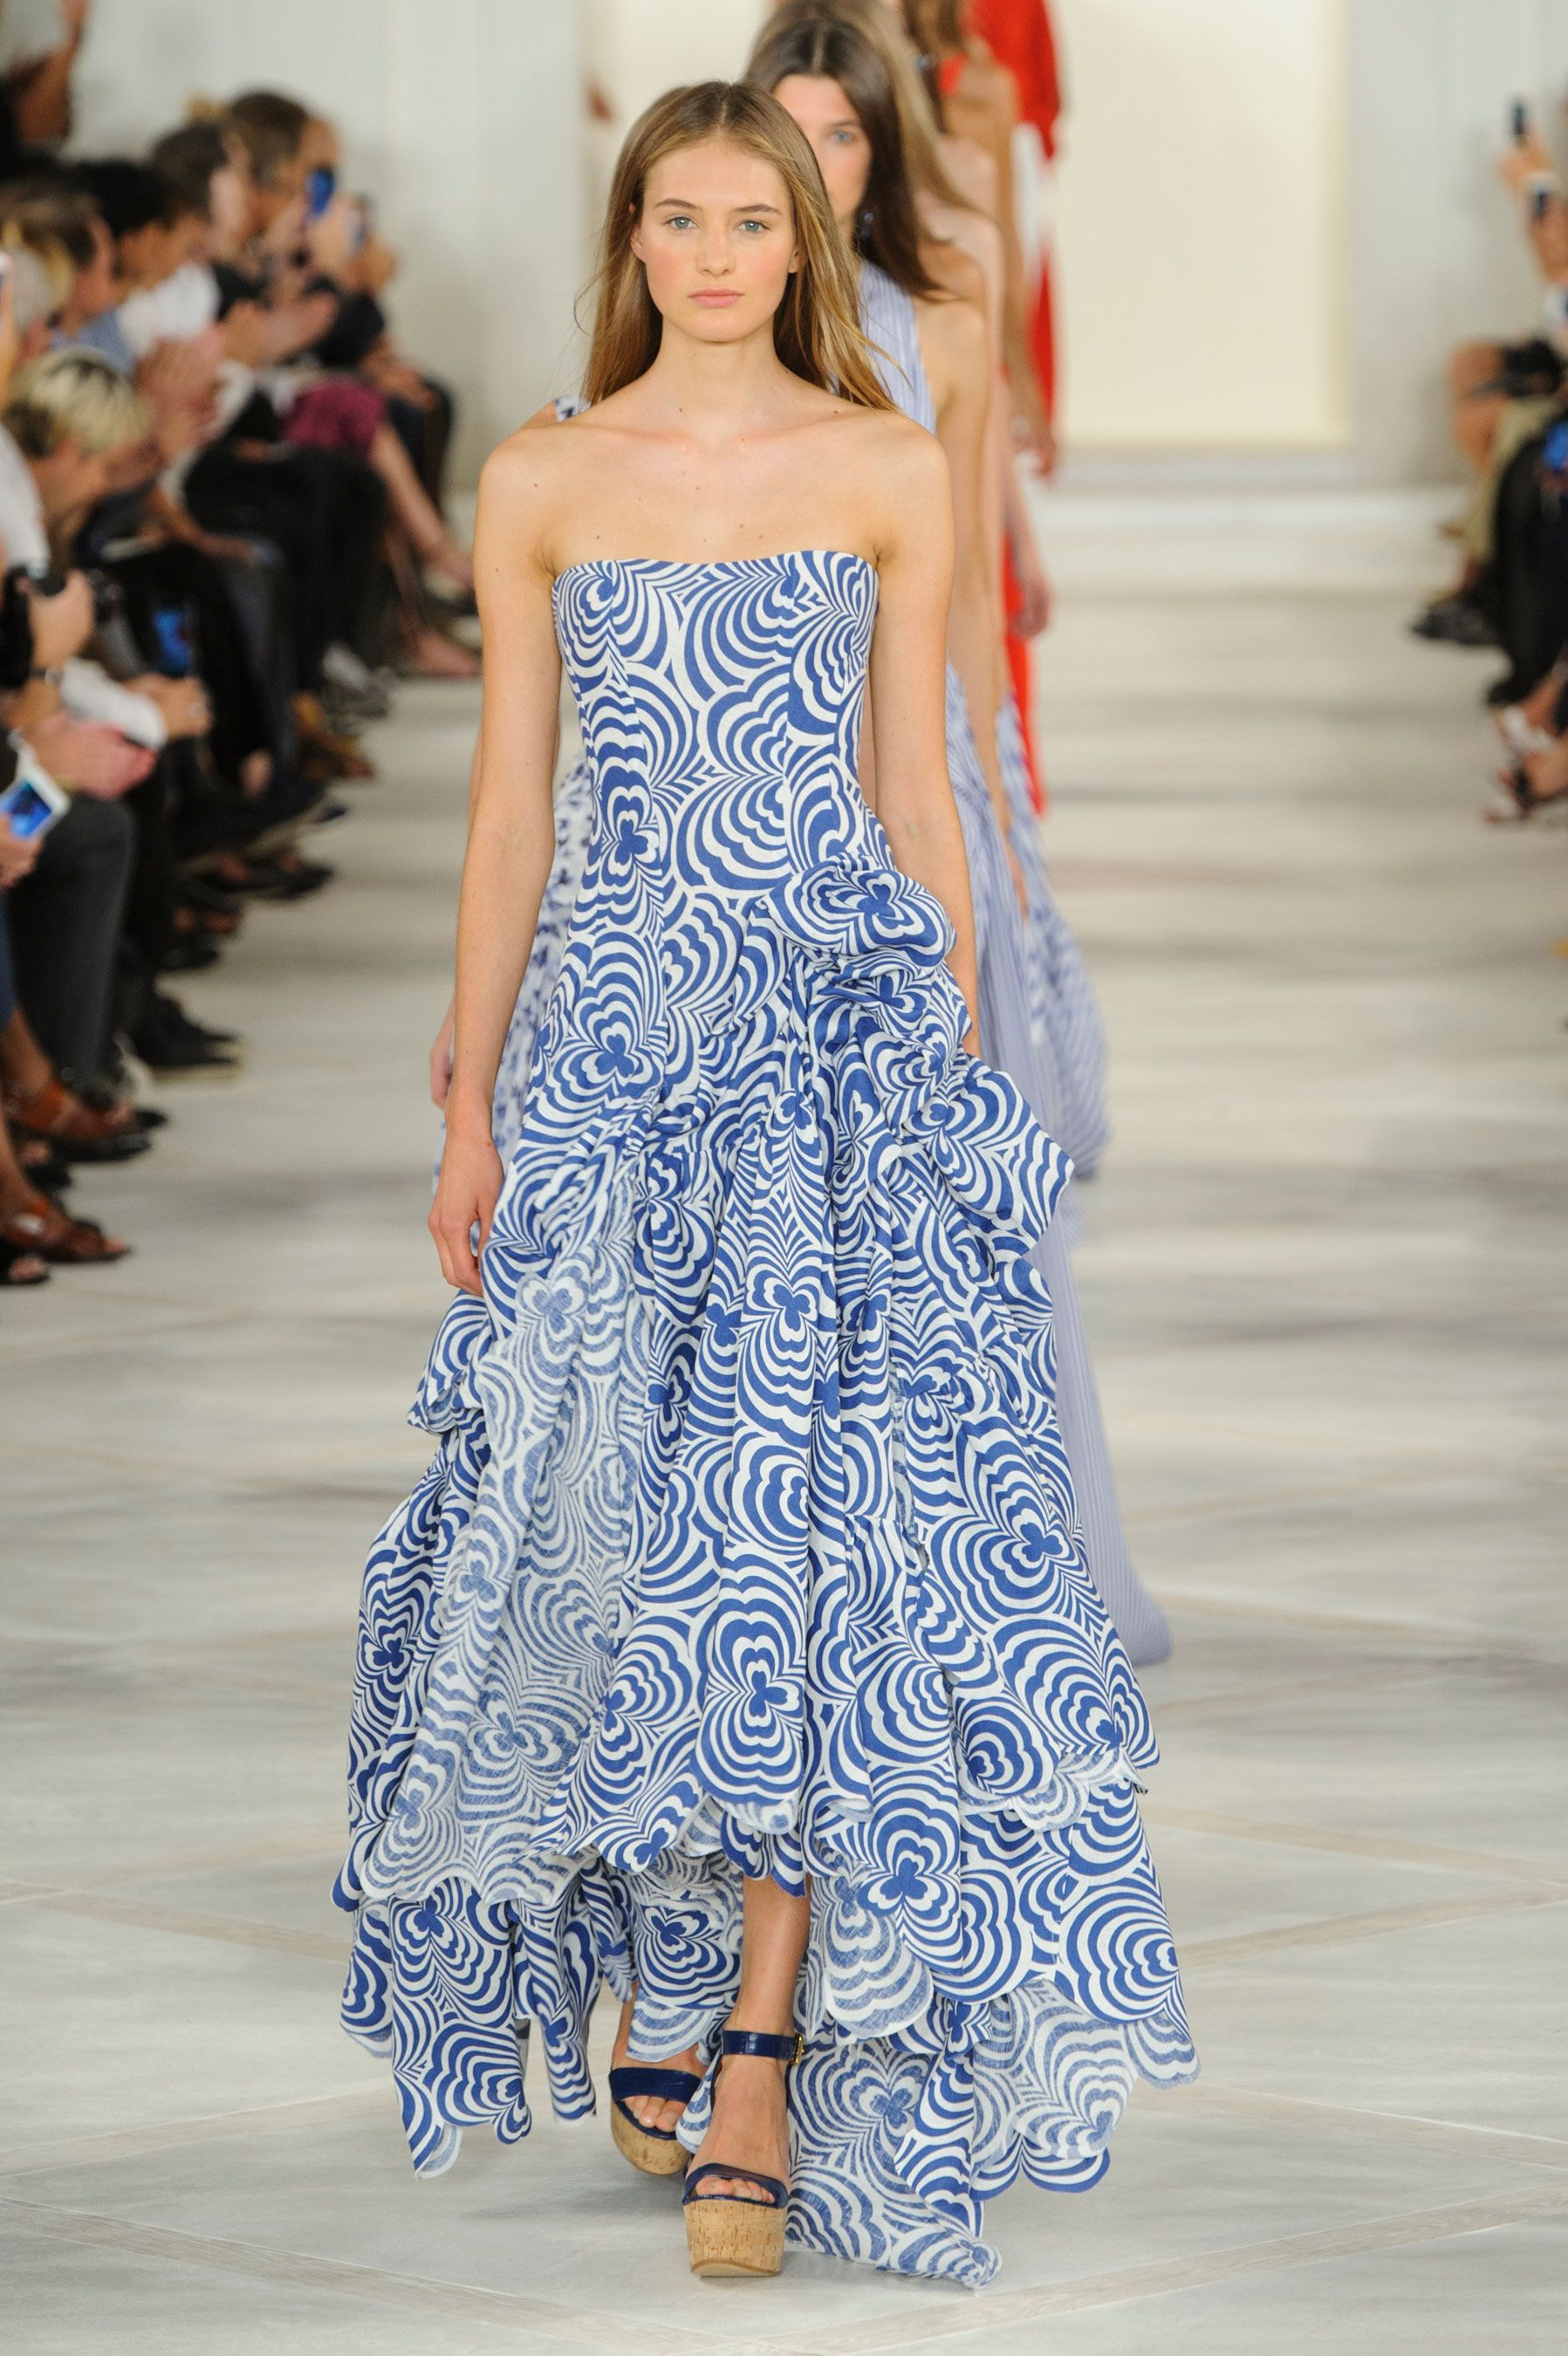 44 of the Prettiest Dresses From New York Fashion Week Spring 2015